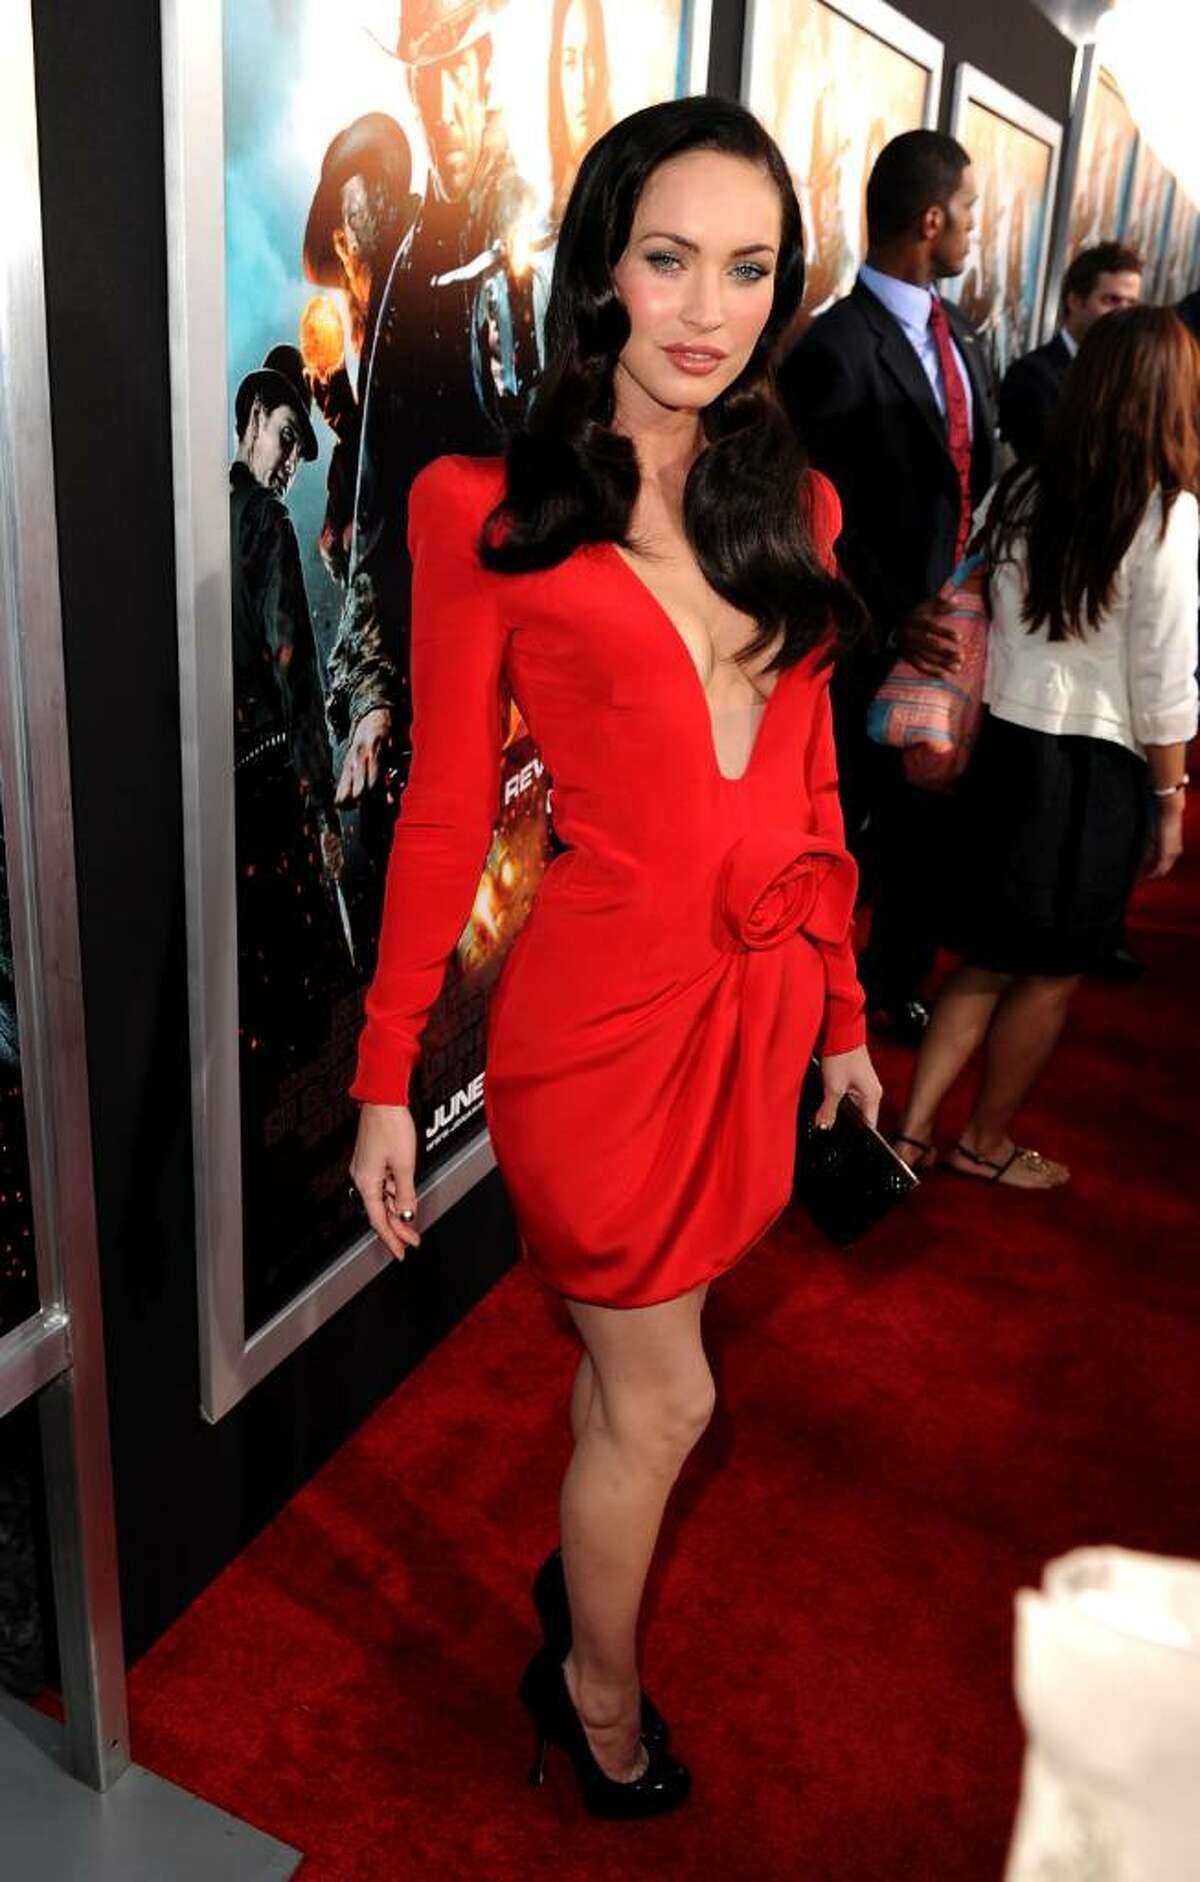 HOLLYWOOD - JUNE 17: Actress Megan Fox arrives at premiere of Warner Bros.